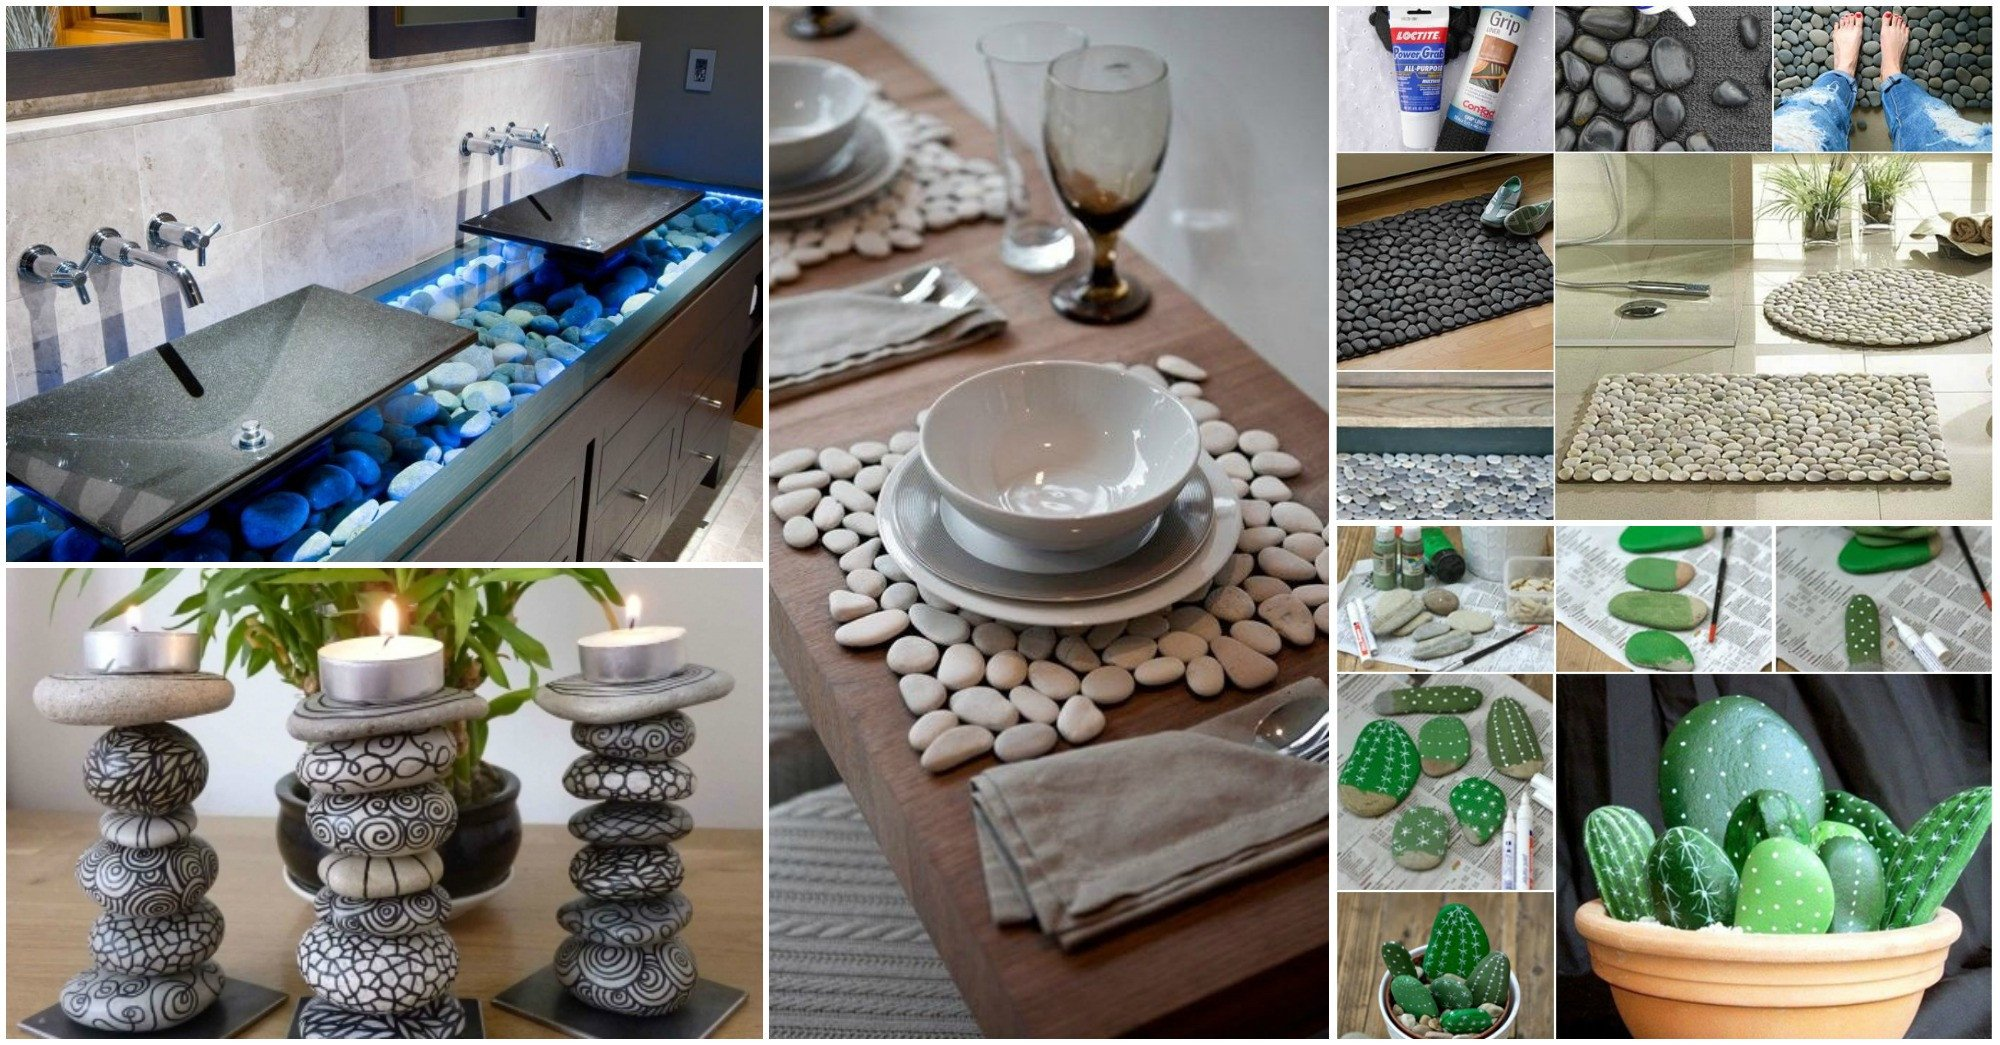 Diy Craft for Home Decor Luxury Diy Unimaginable Stone Craft Home Decor Ideas that Will Amaze You